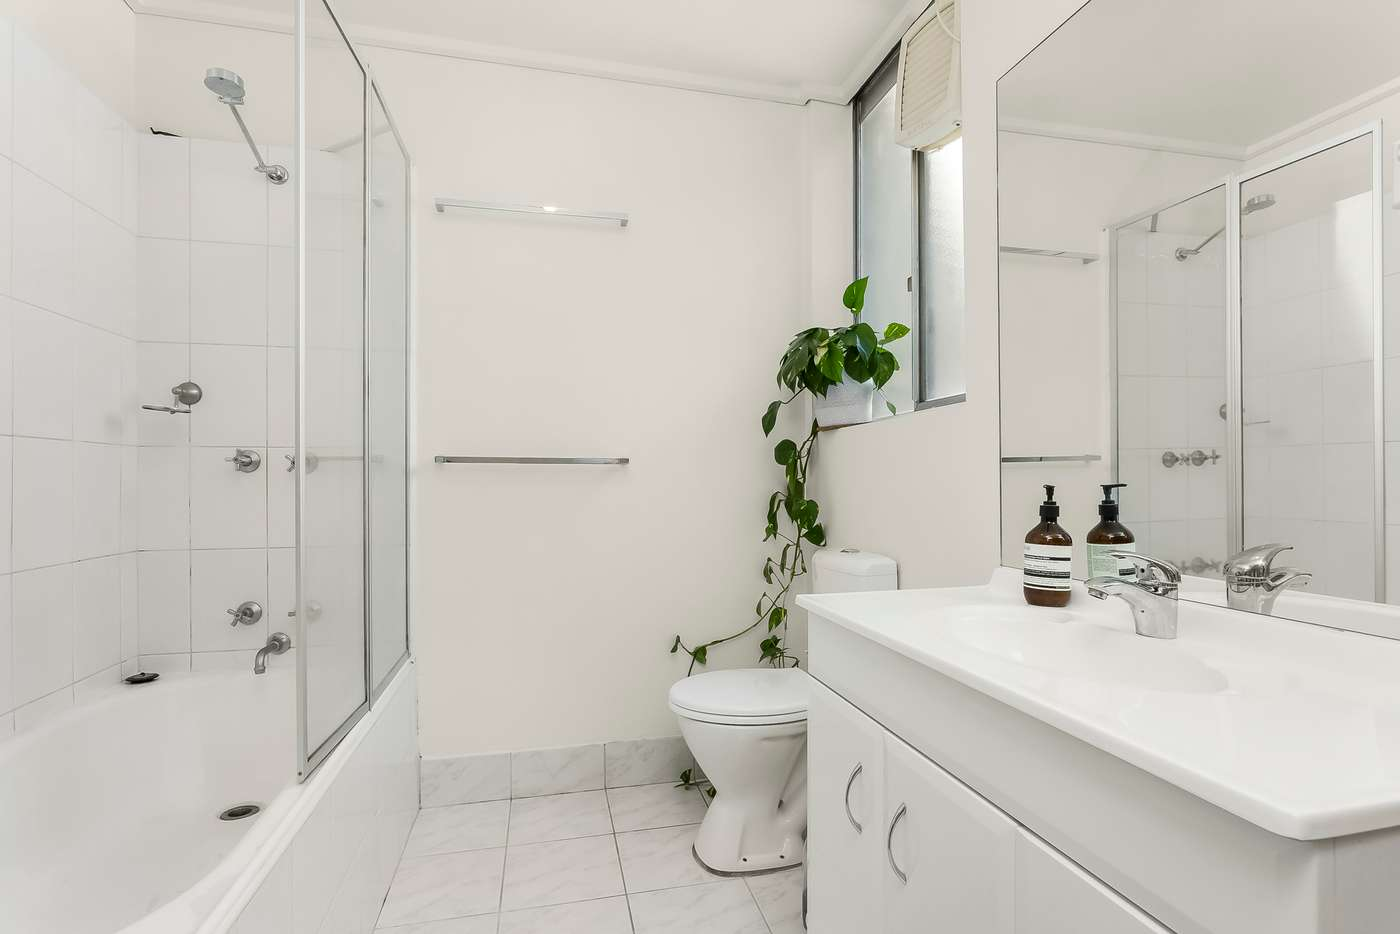 Sixth view of Homely apartment listing, 16/60 Oshanassy Street, North Melbourne VIC 3051